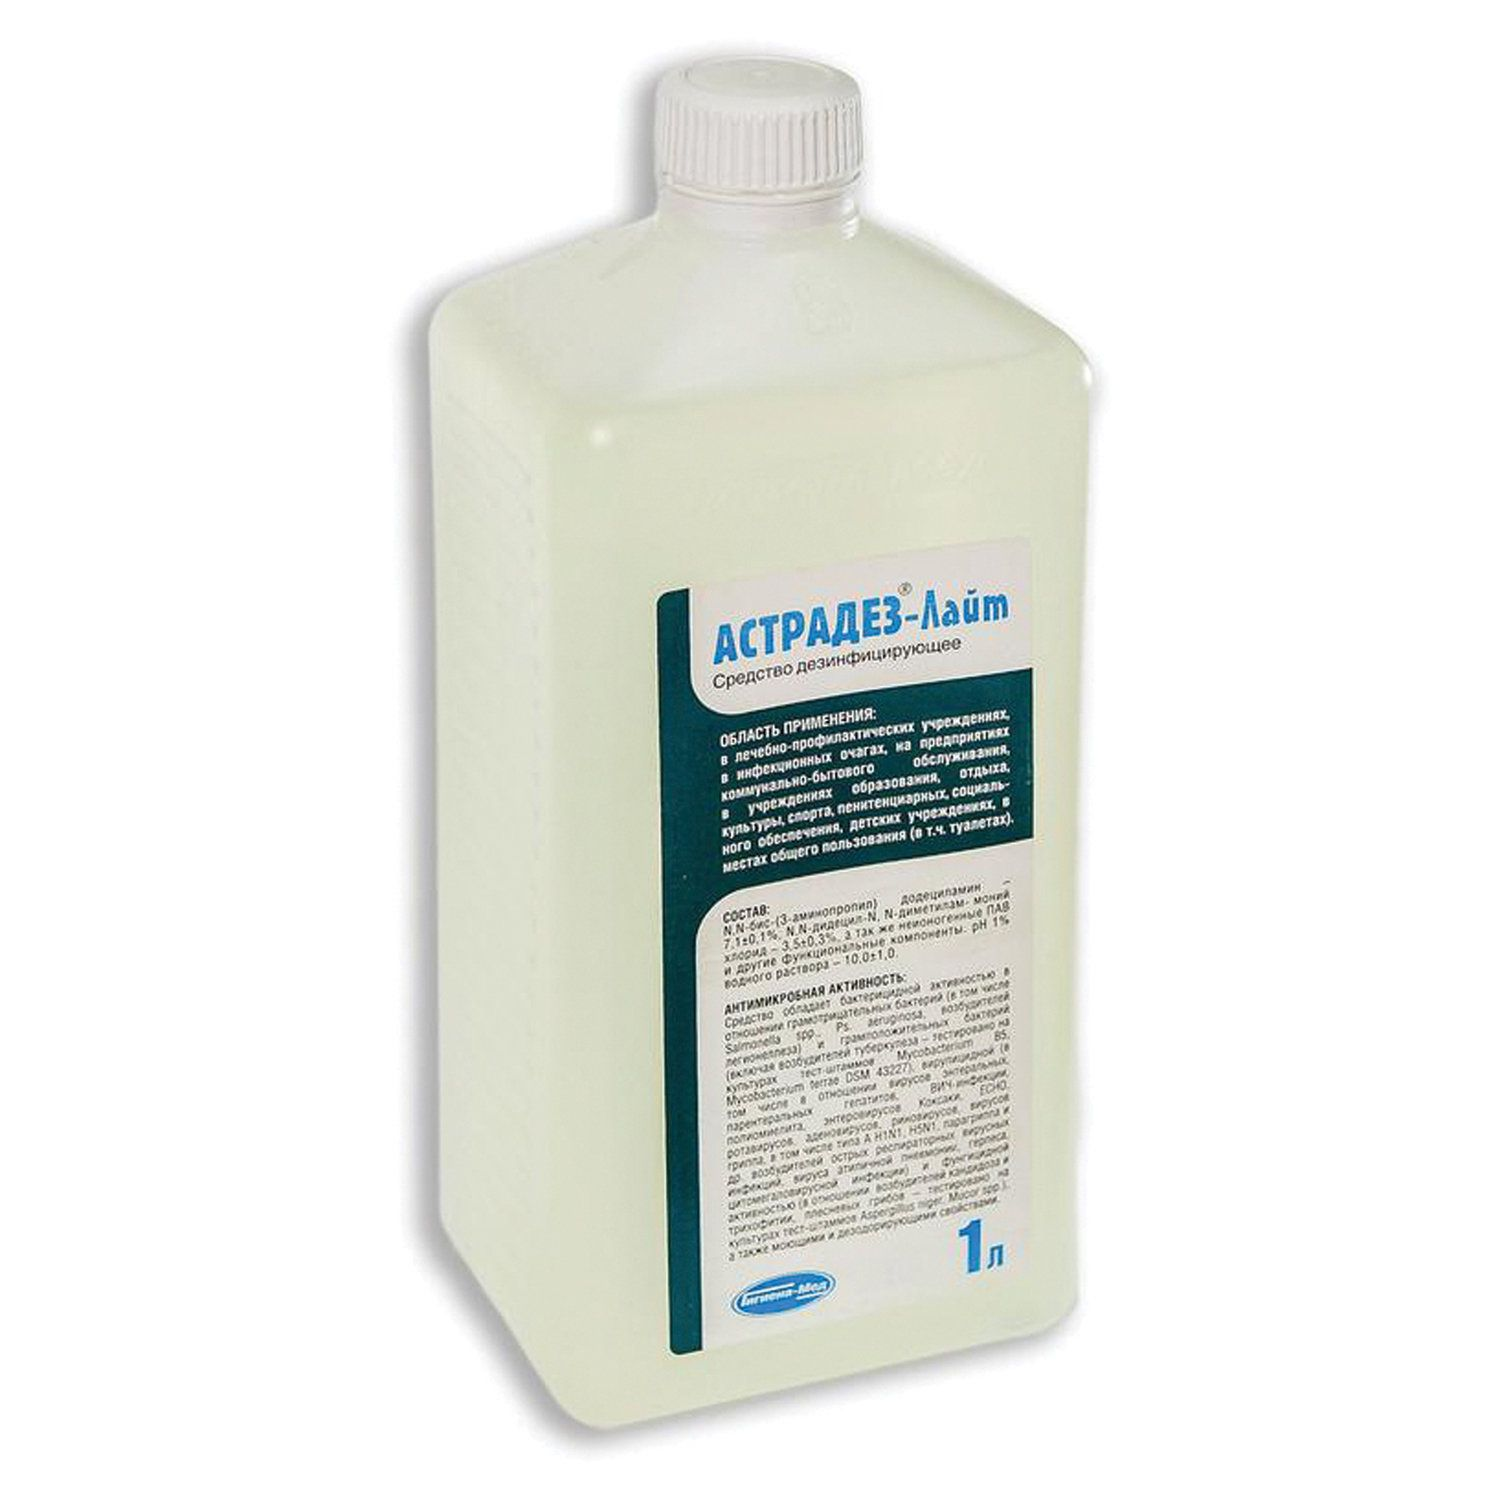 BRILLIANT / ASTRADEZ LIGHT disinfectant 1 l, concentrate